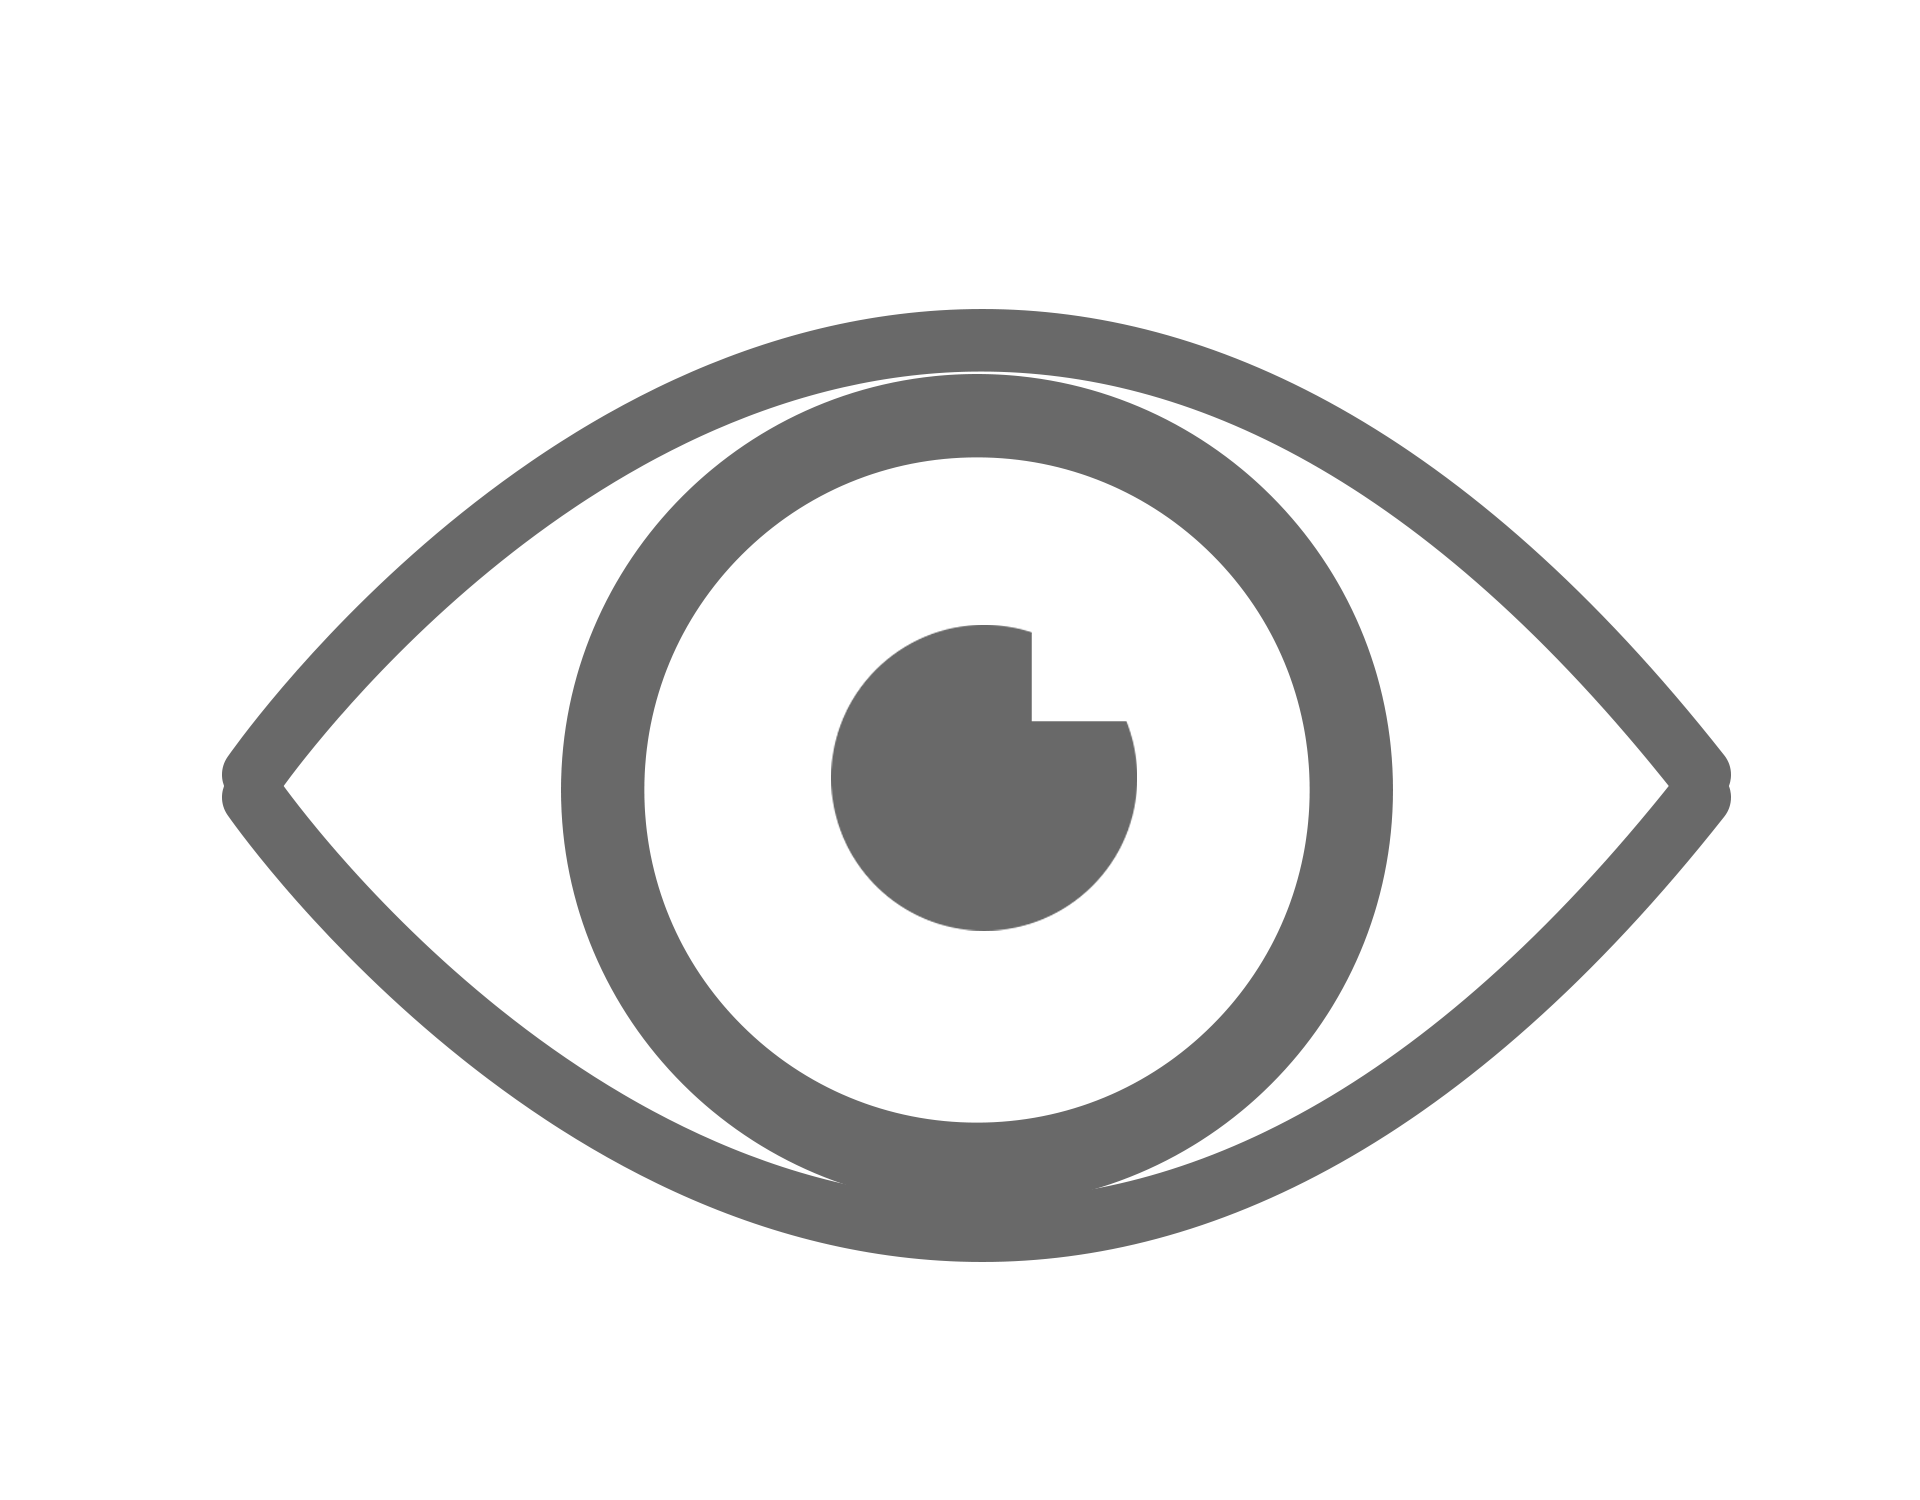 Vision PNG - 3125